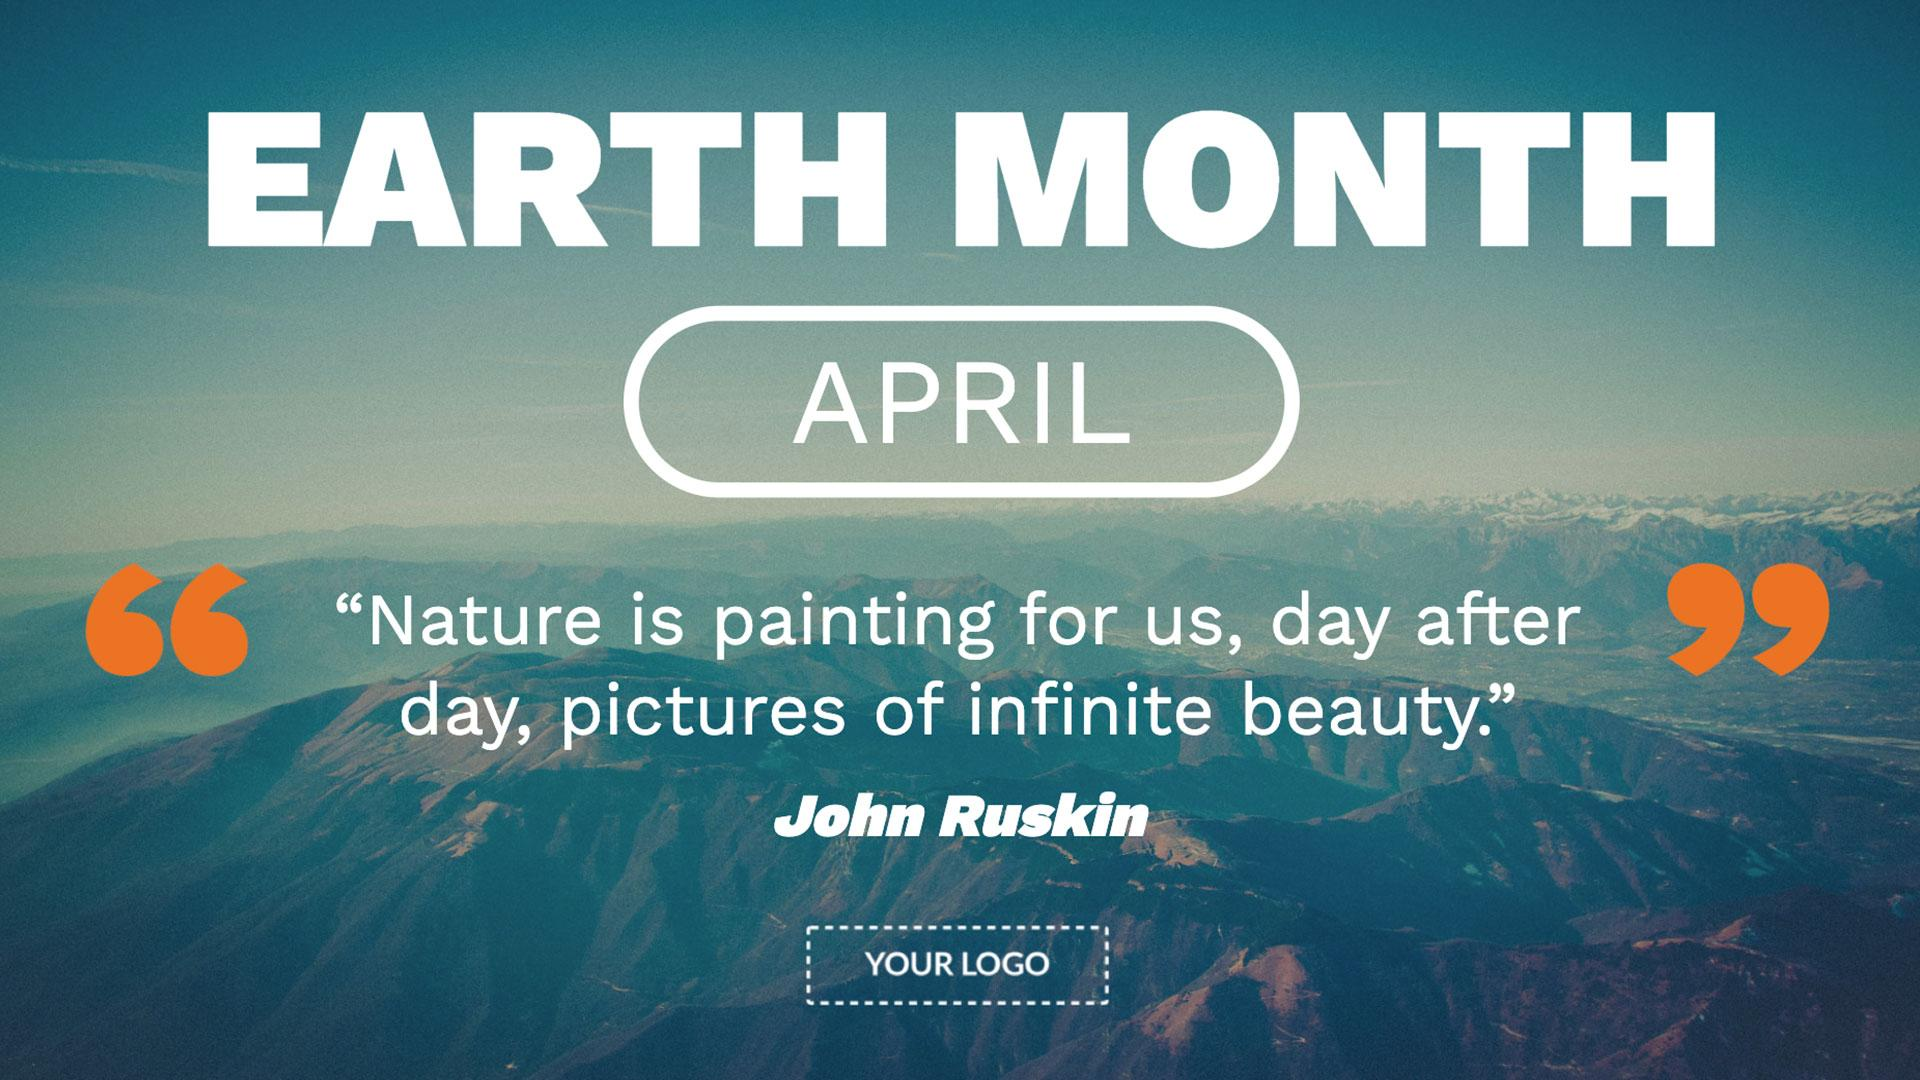 Earth Month Digital Signage Template